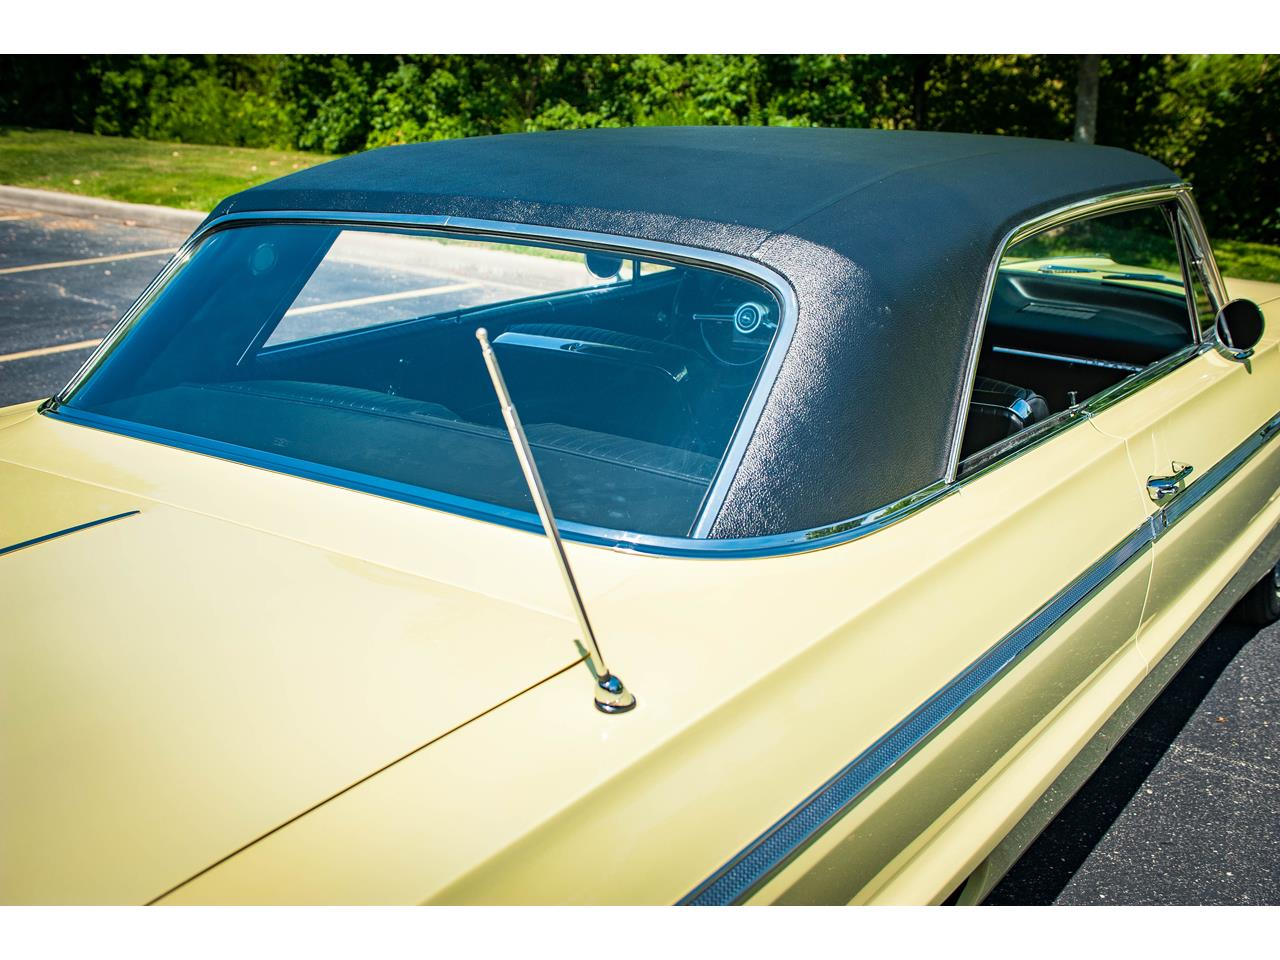 Large Picture of Classic '64 Impala located in Illinois - $45,000.00 Offered by Gateway Classic Cars - St. Louis - QRDR